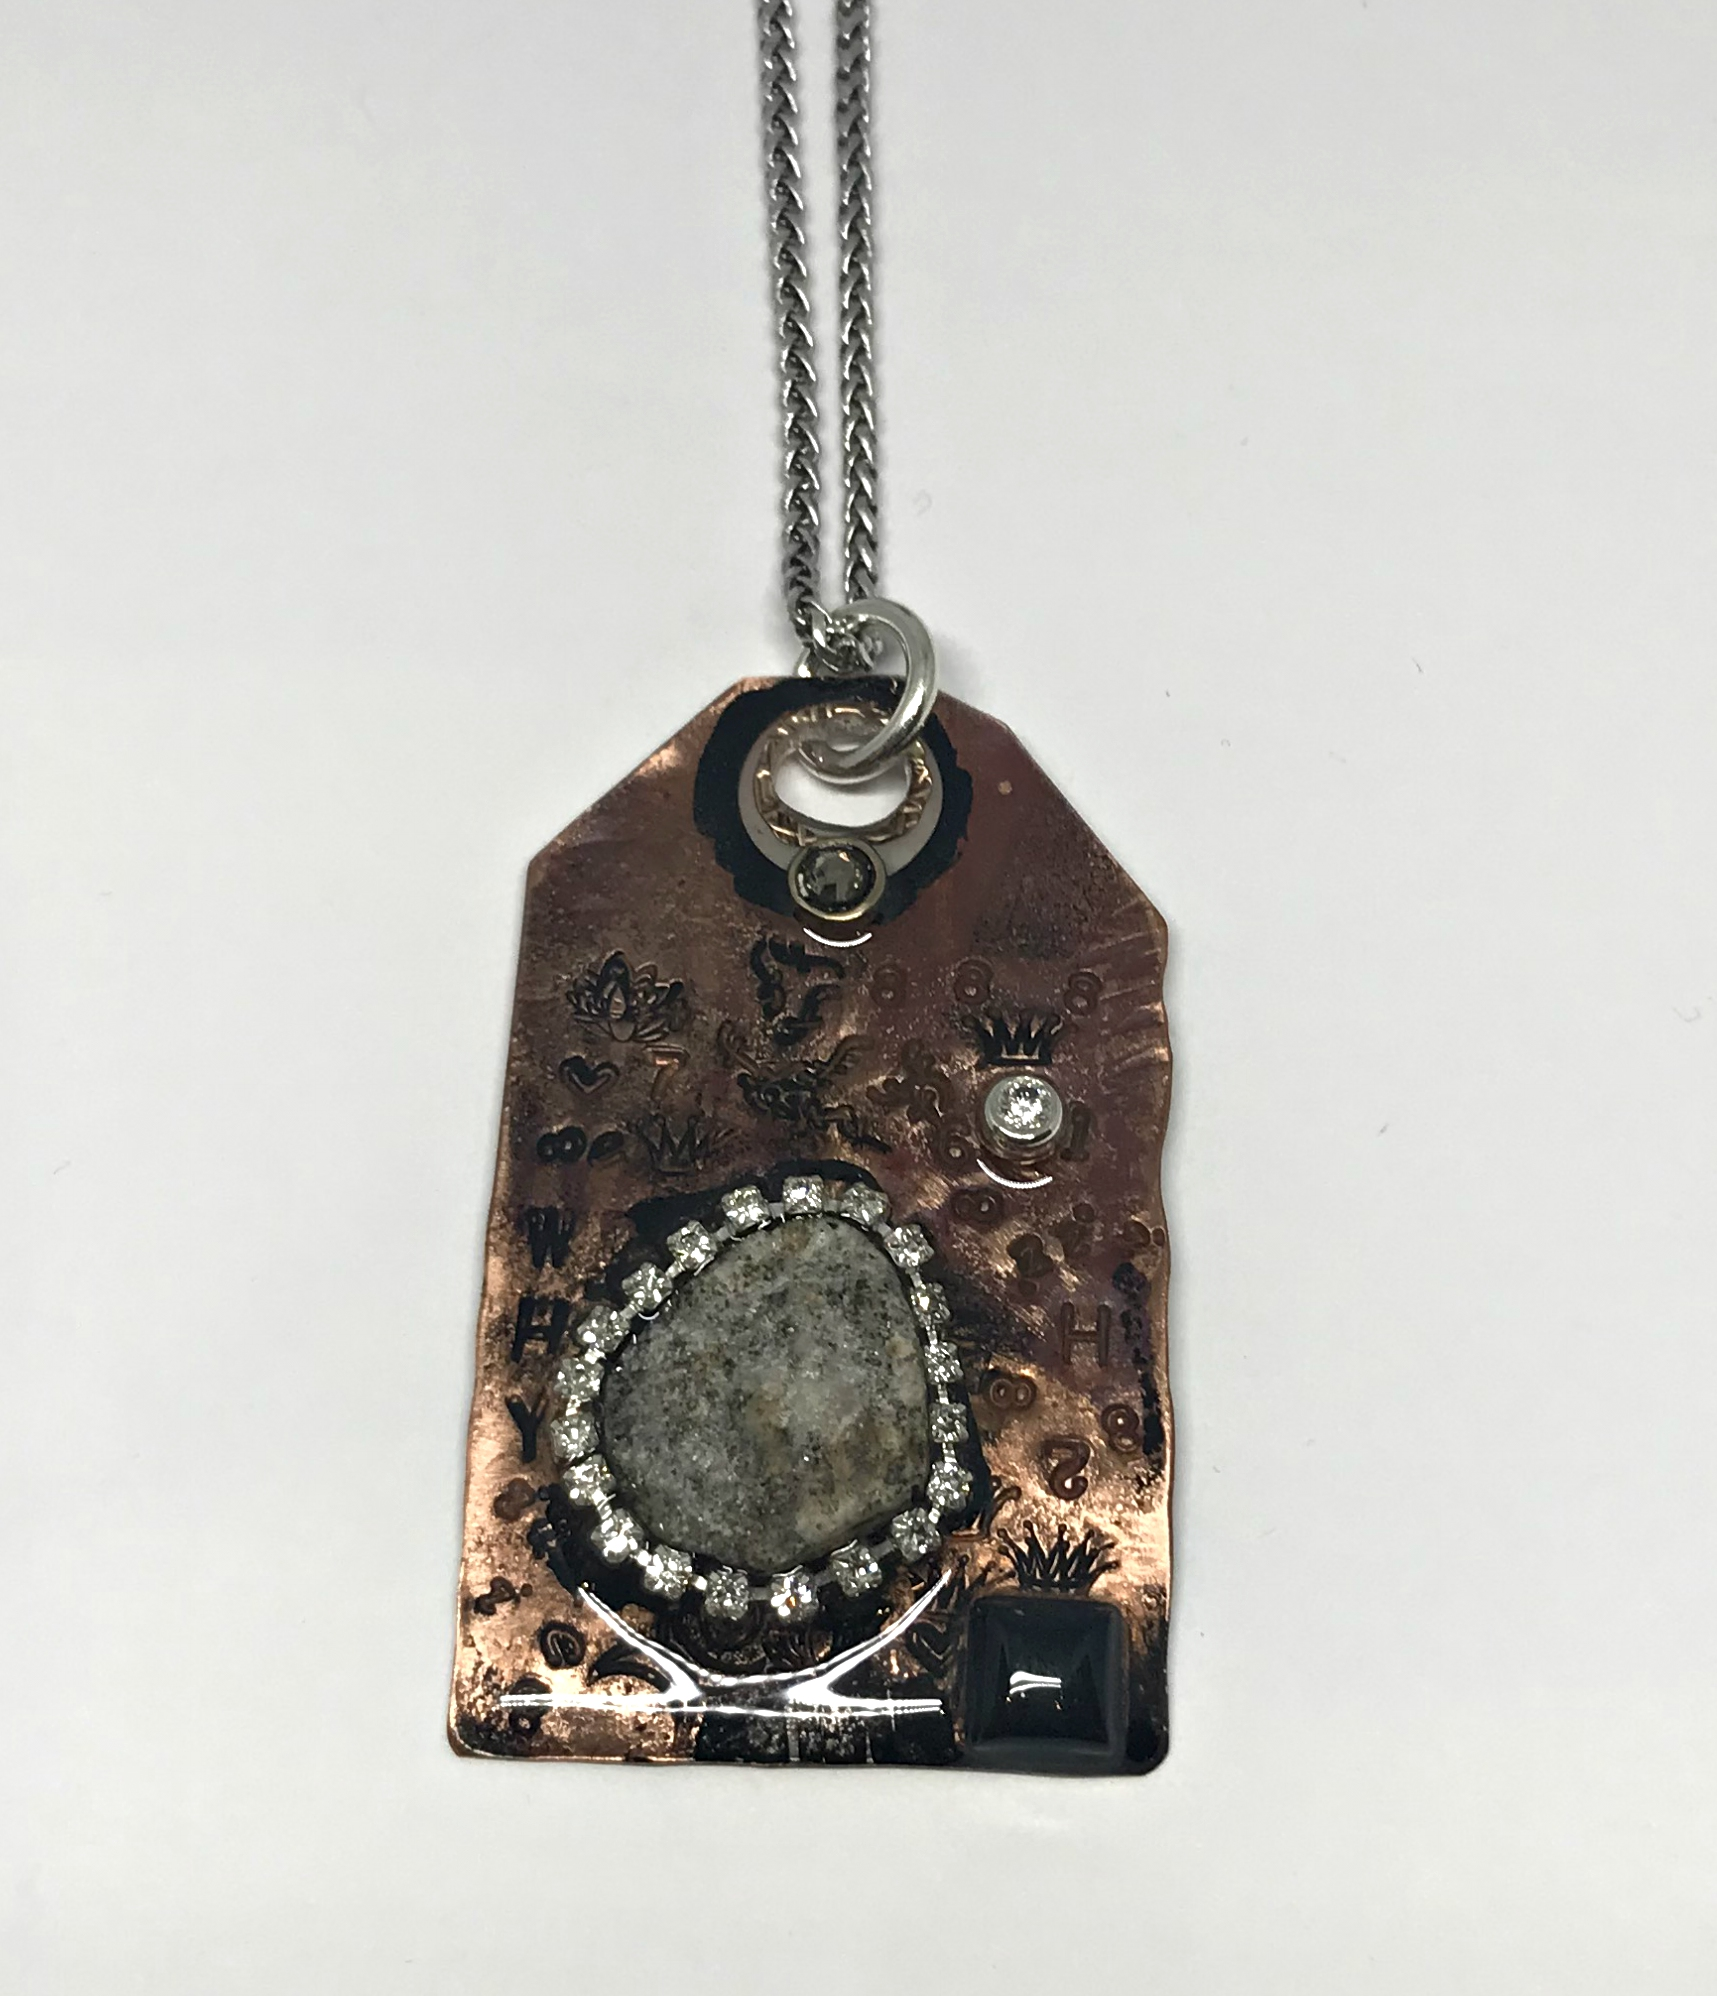 Cave Art Necklace by Karyn Chopik | Effusion Art Gallery + Cast Glass Studio, Invermere BC